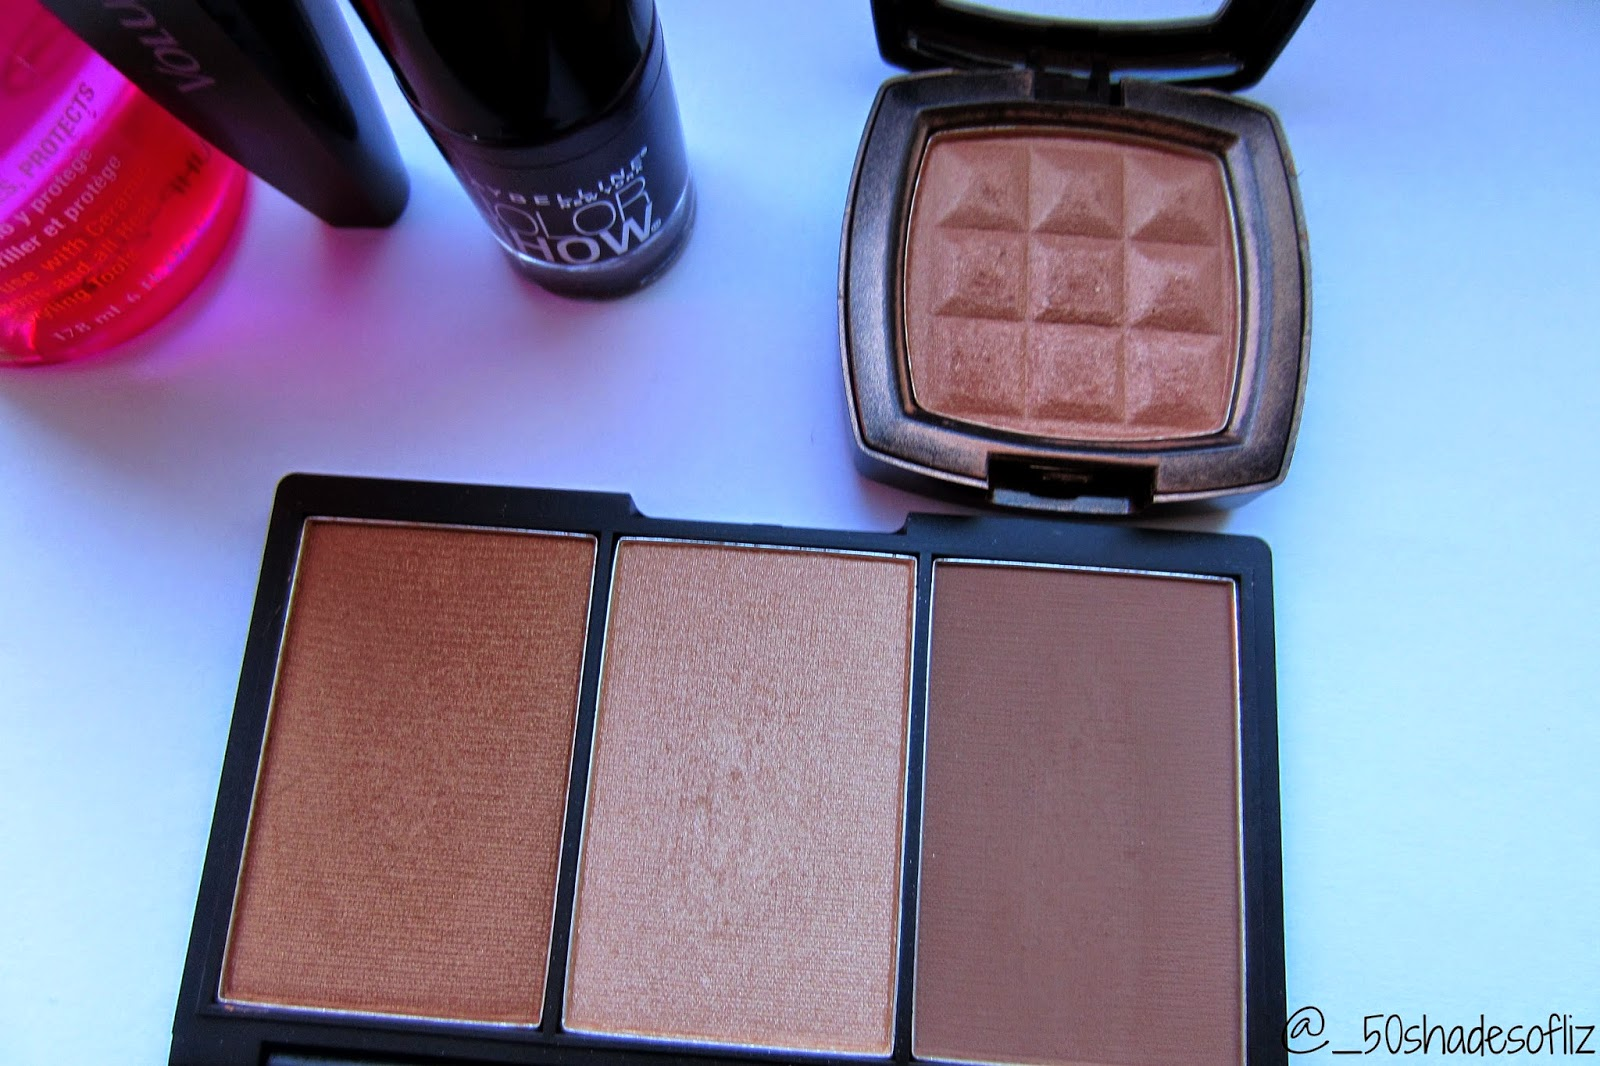 November 2014 favorites- Nyx blush terracotta and sleek face form kit